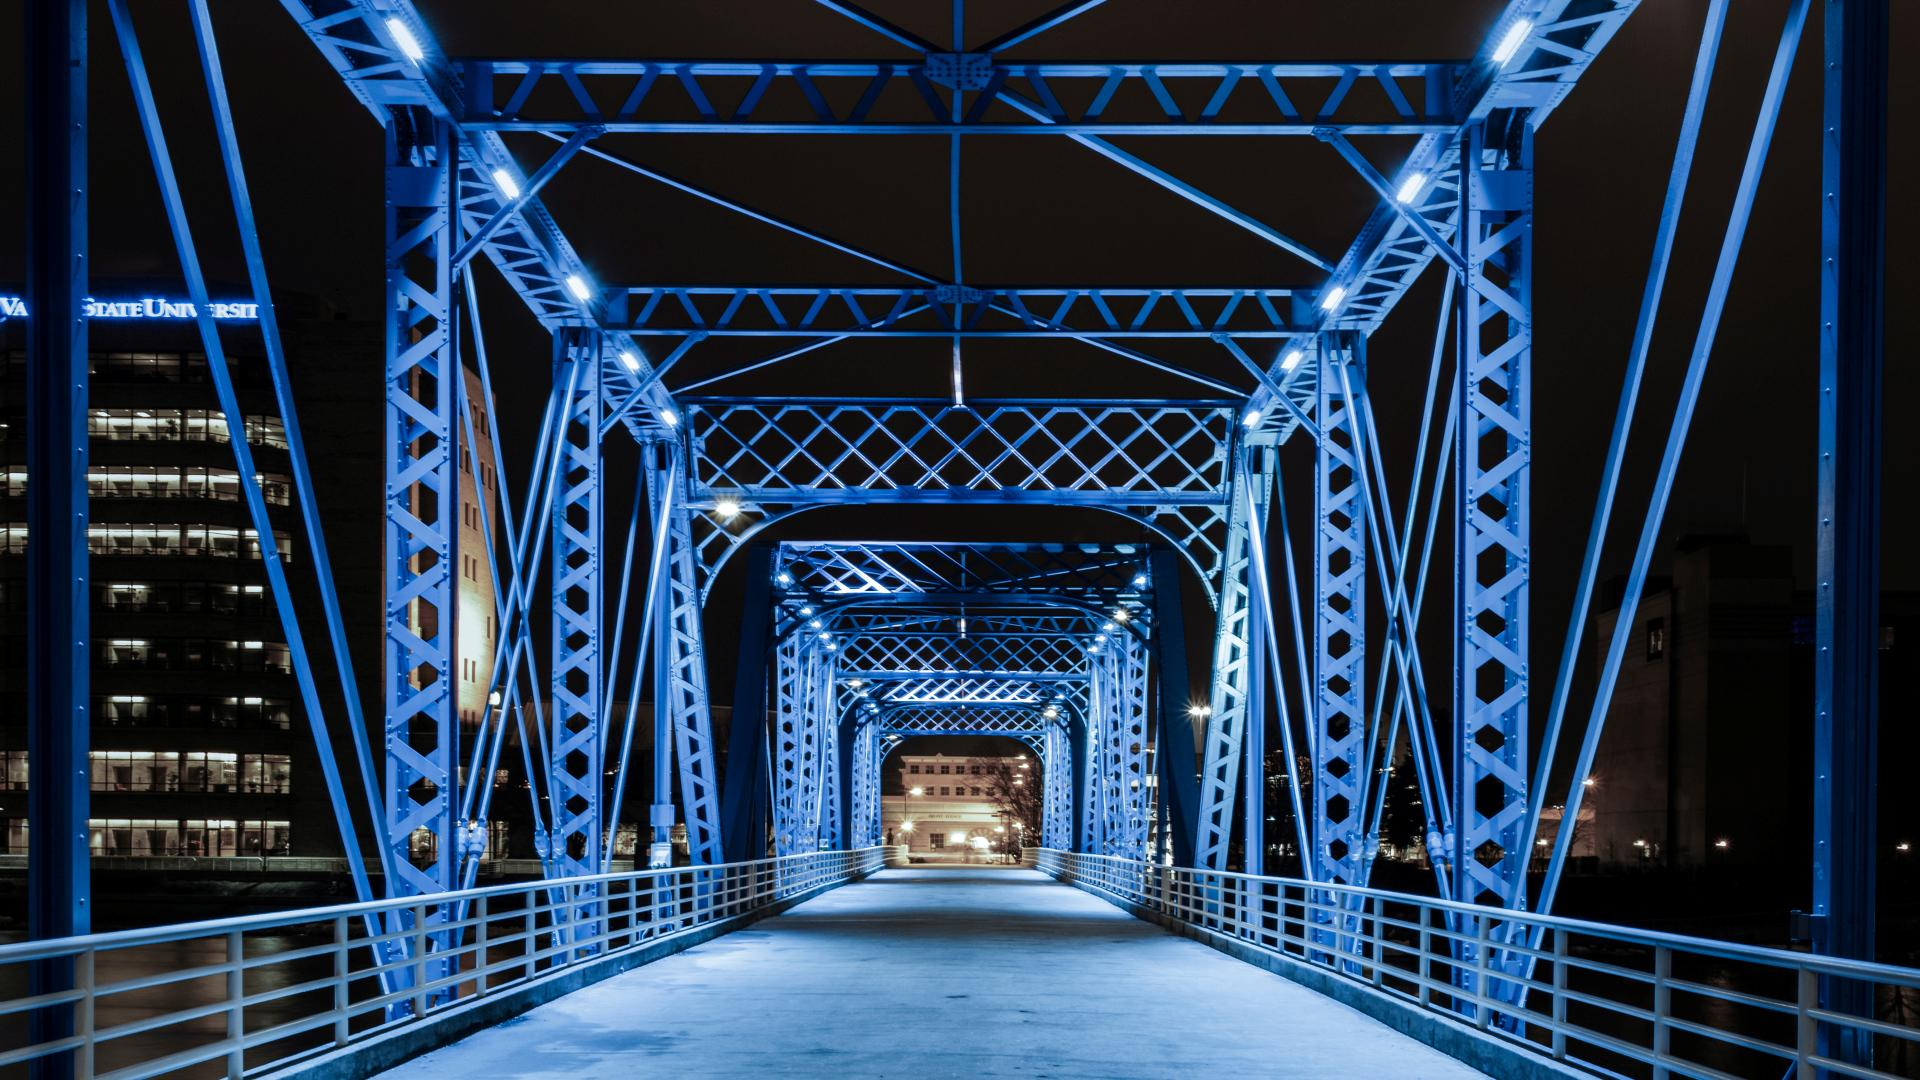 Magical Blue Bridge Grand Rapids